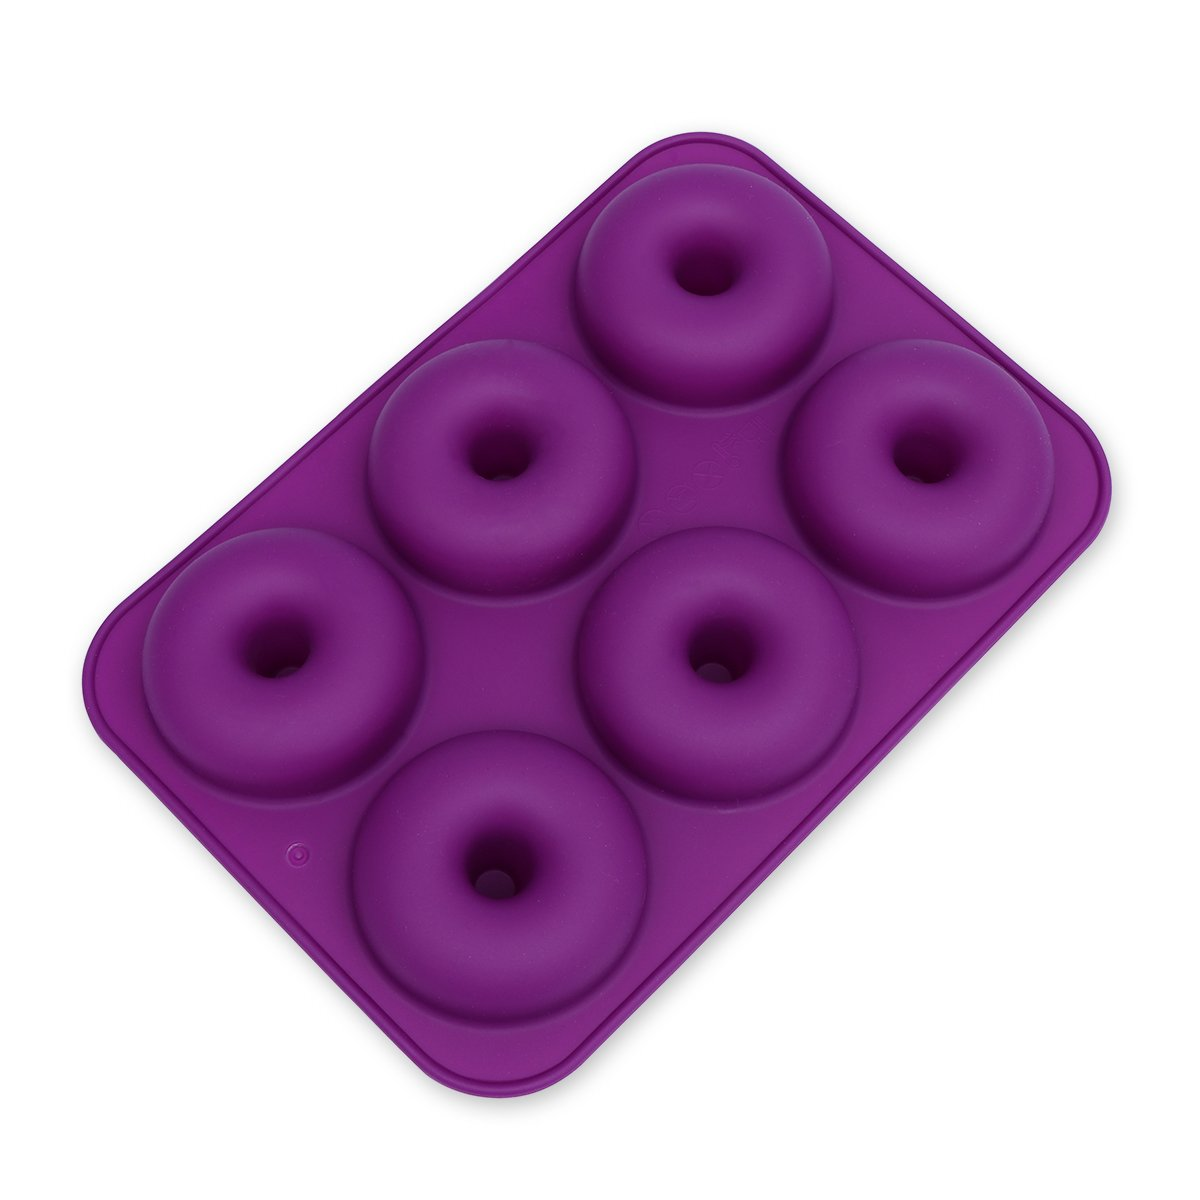 OUNONA 6-Cavity Silicone Donut Mold,Non-Stick Donut Baking Pan for Cake Biscuit Bagels Muffins (Dark Purple) by OUNONA